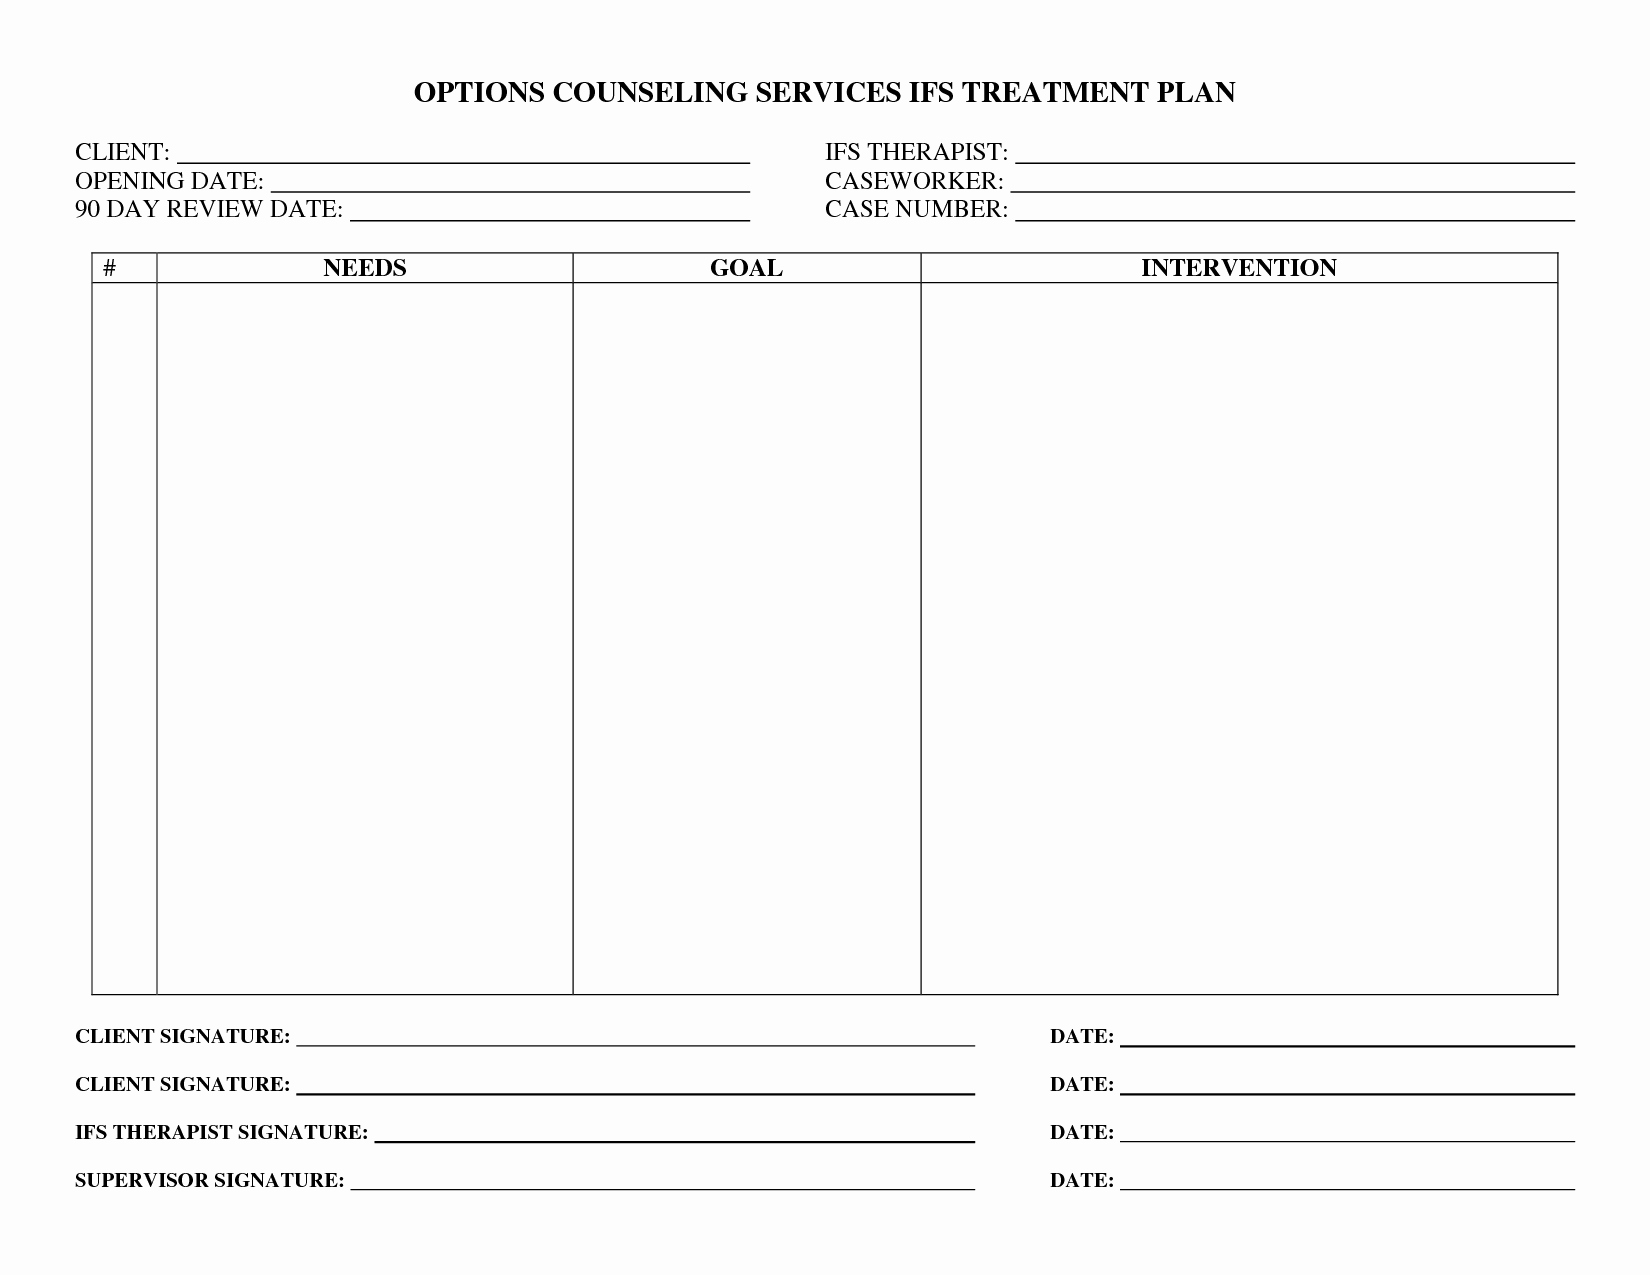 Counseling Treatment Plan Template Inspirational Treatment Plan forms Mental Health Printable Google